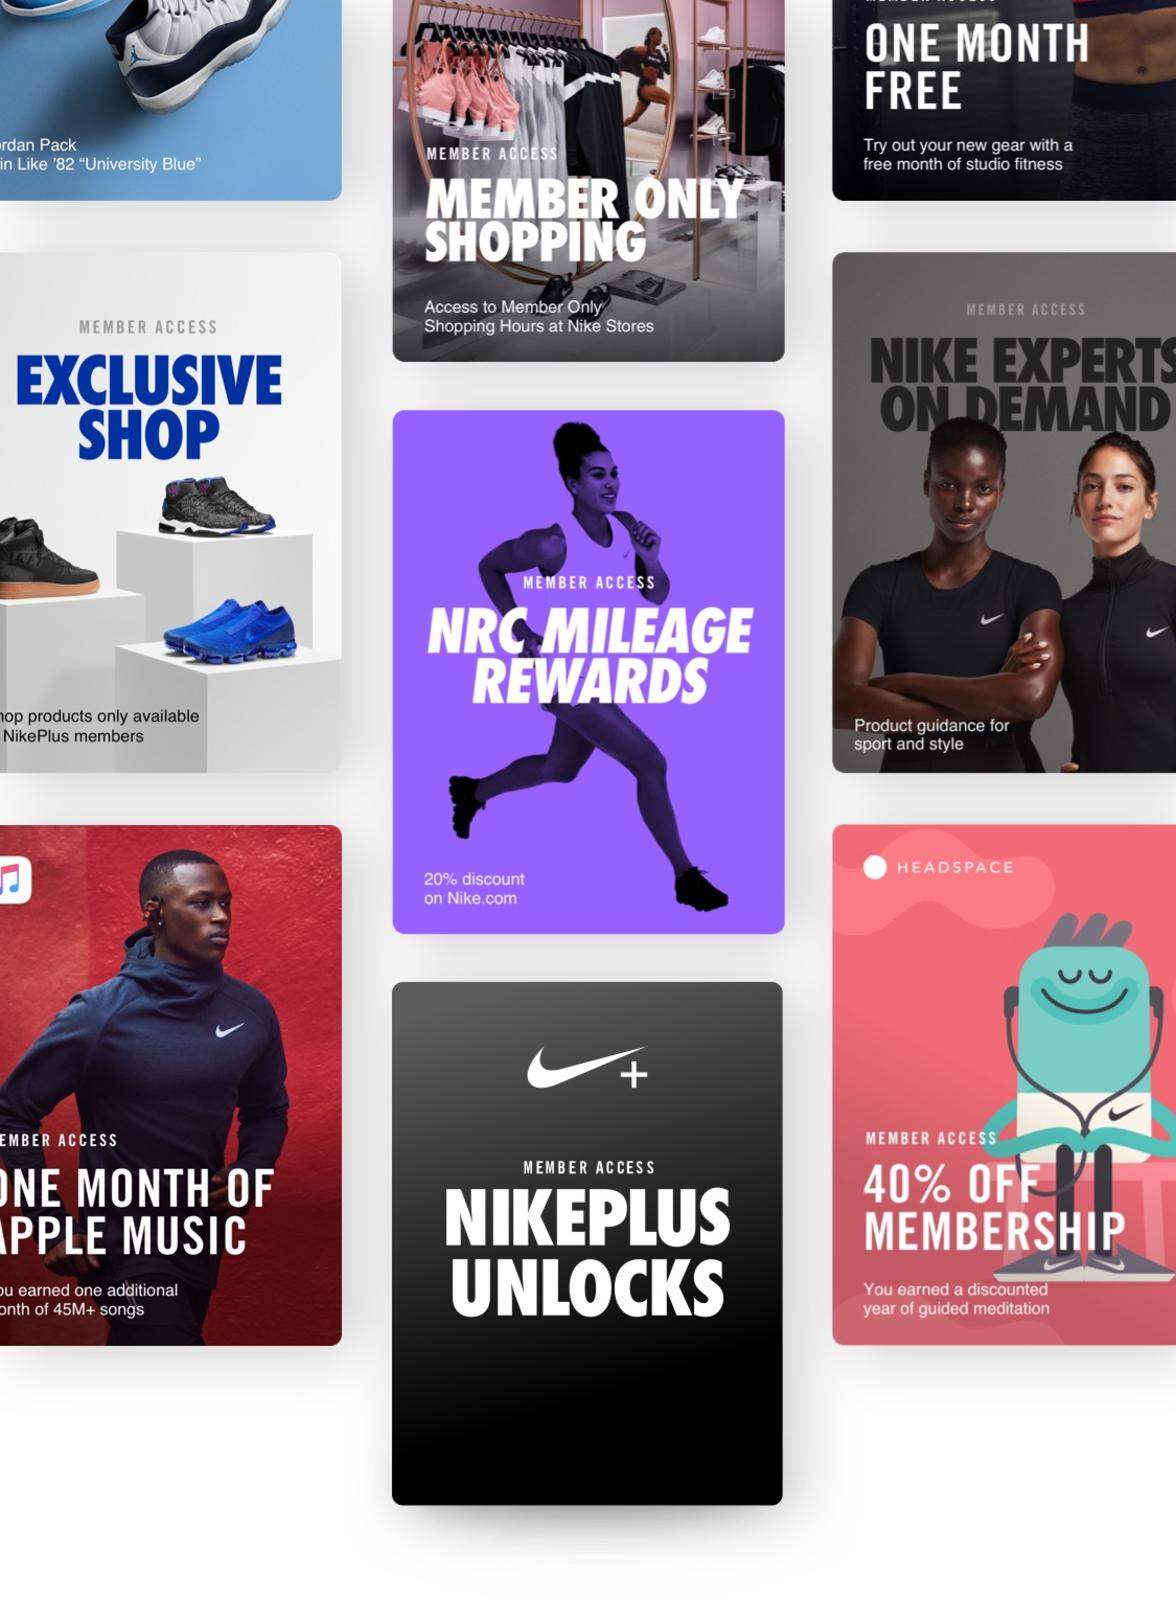 NikePlus Membership Unlocks New Benefits To Inspire and